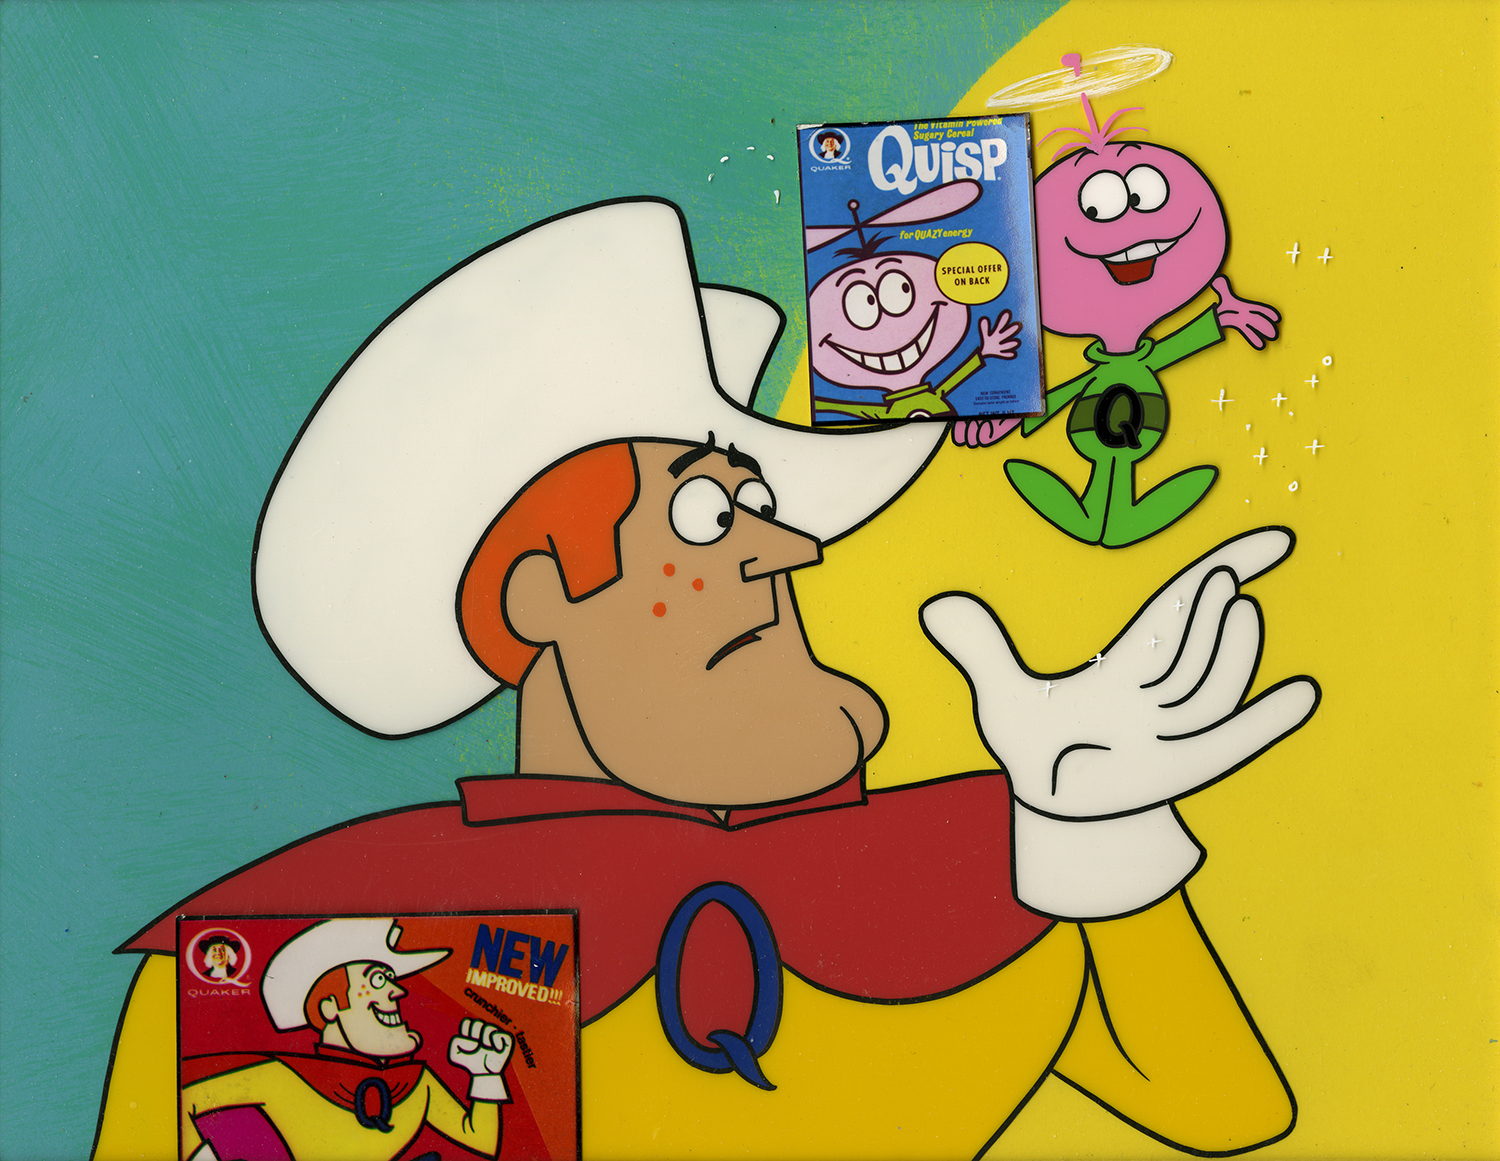 quisp and quake cereal production cel production background id